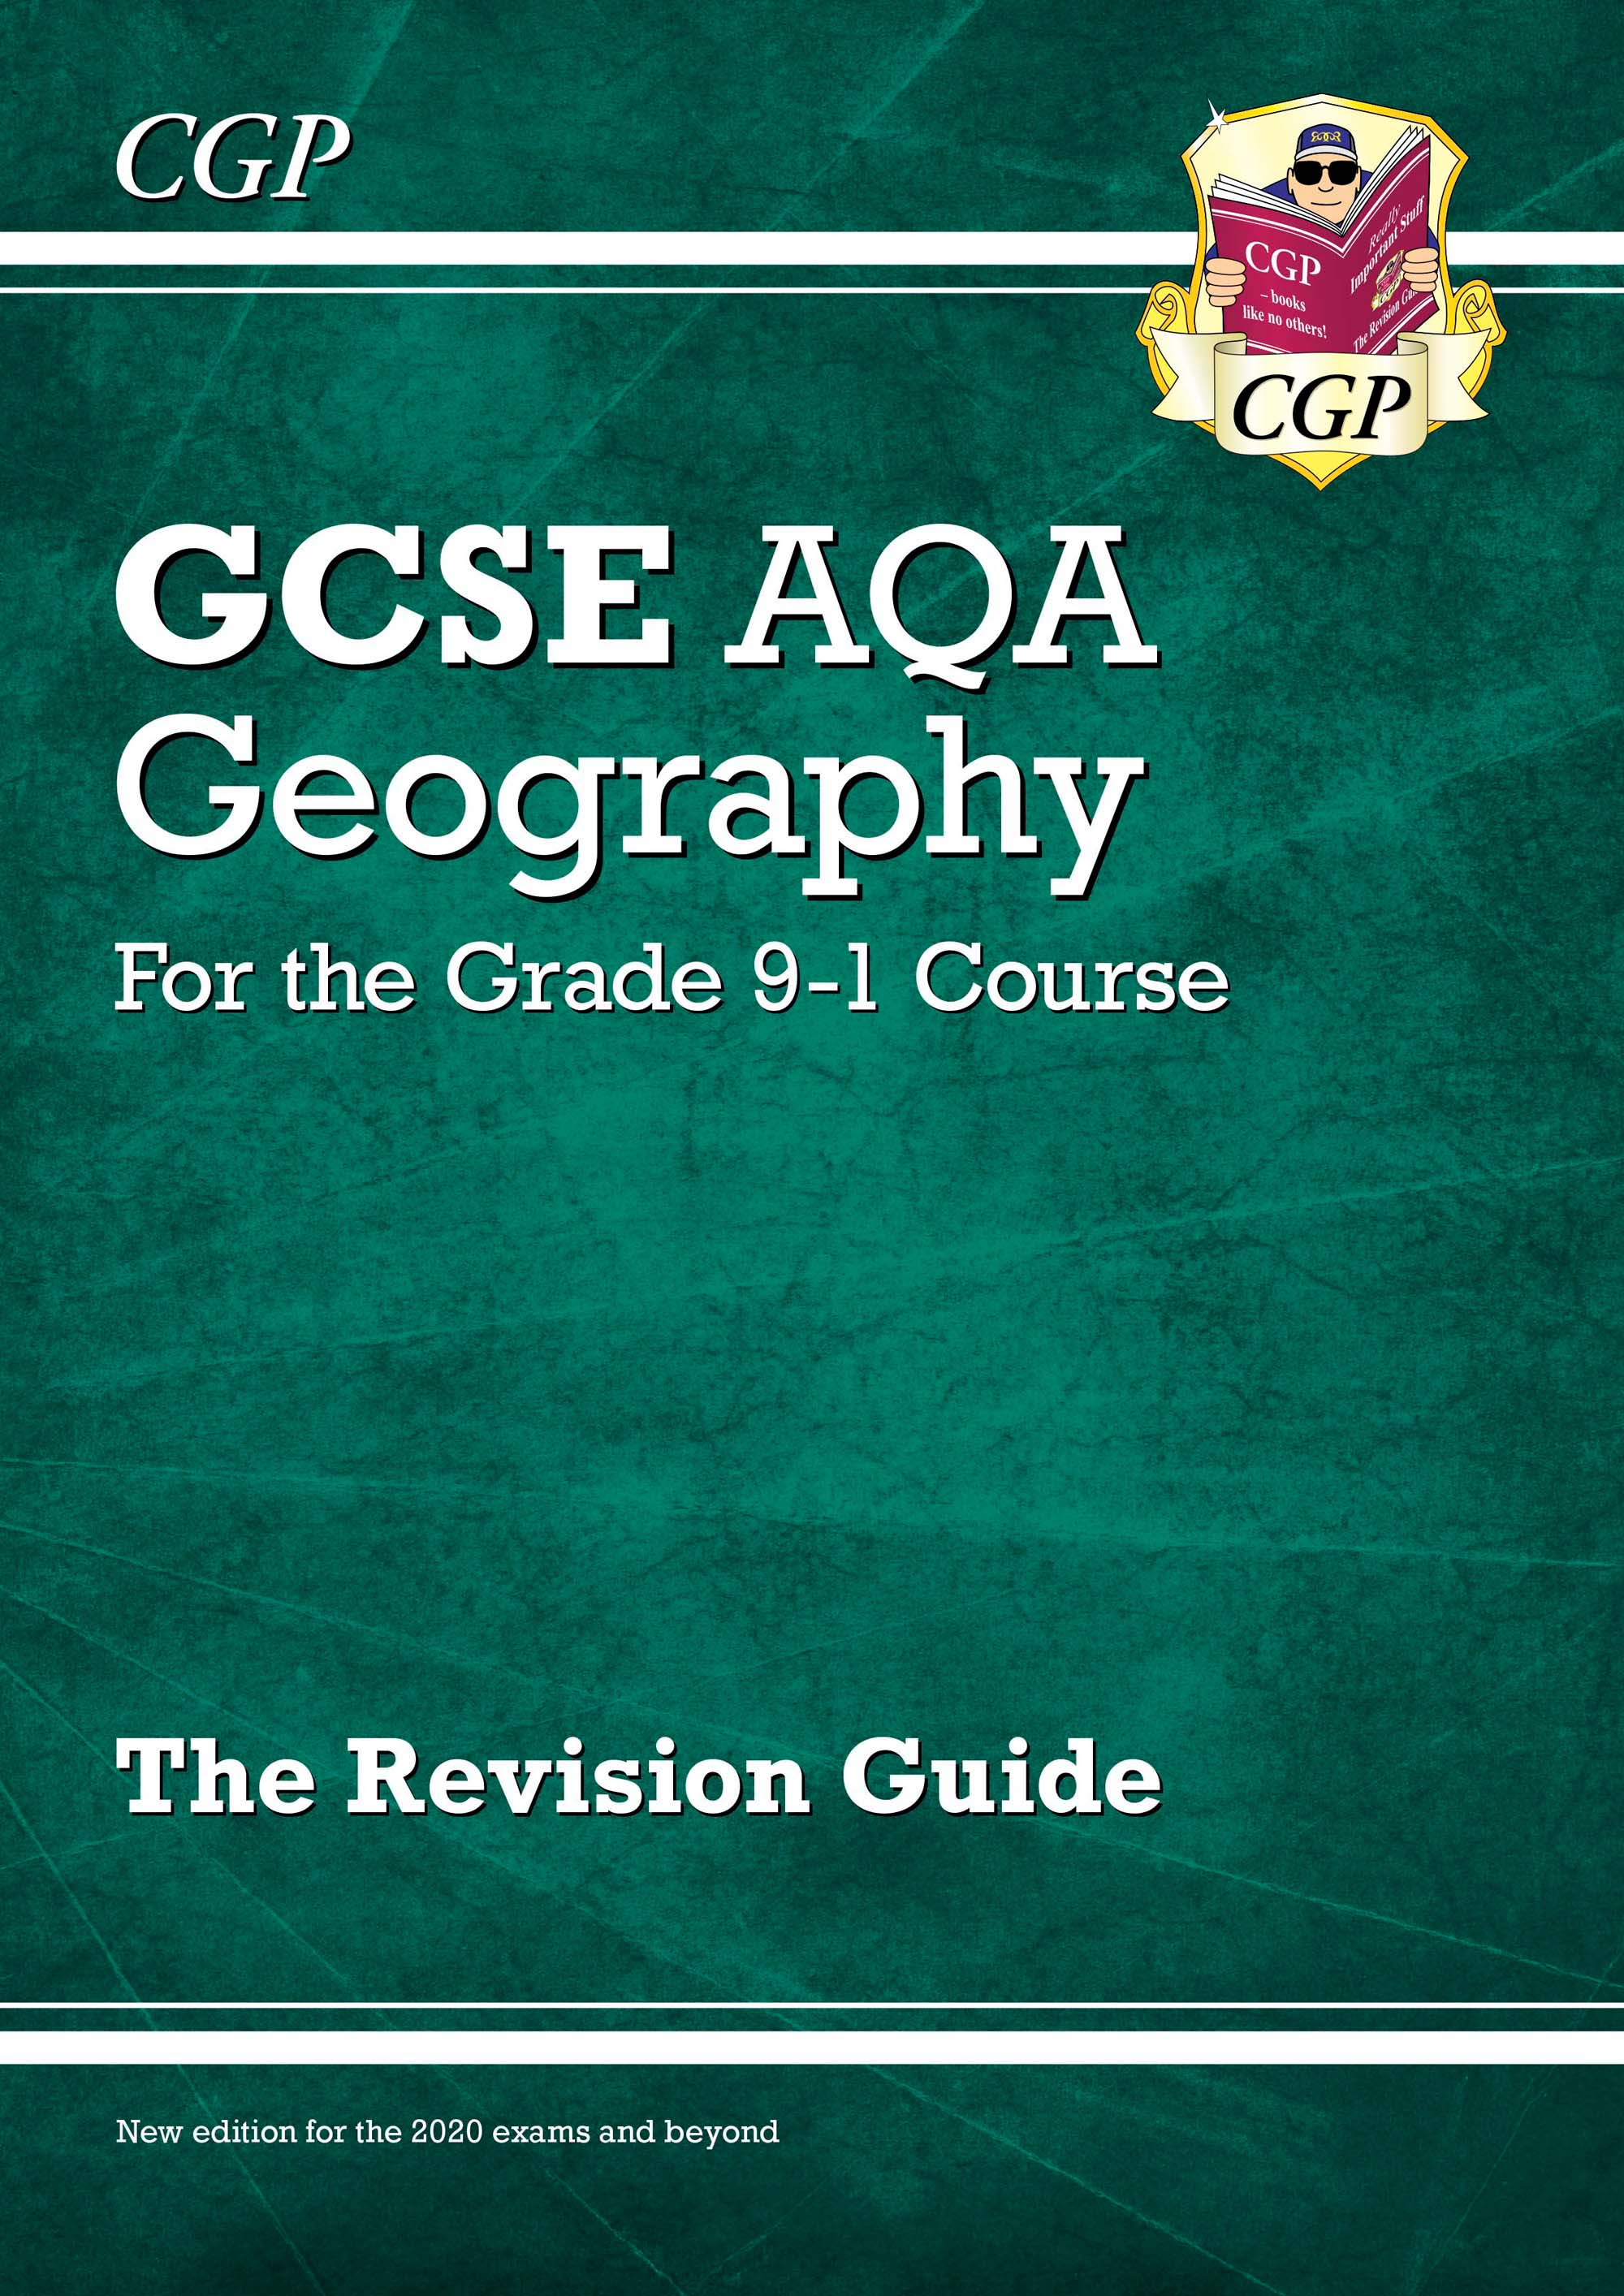 GAR45DK - New GCSE 9-1 Geography AQA Revision Guide (with Online Ed) - New Edition for 2021 exams &